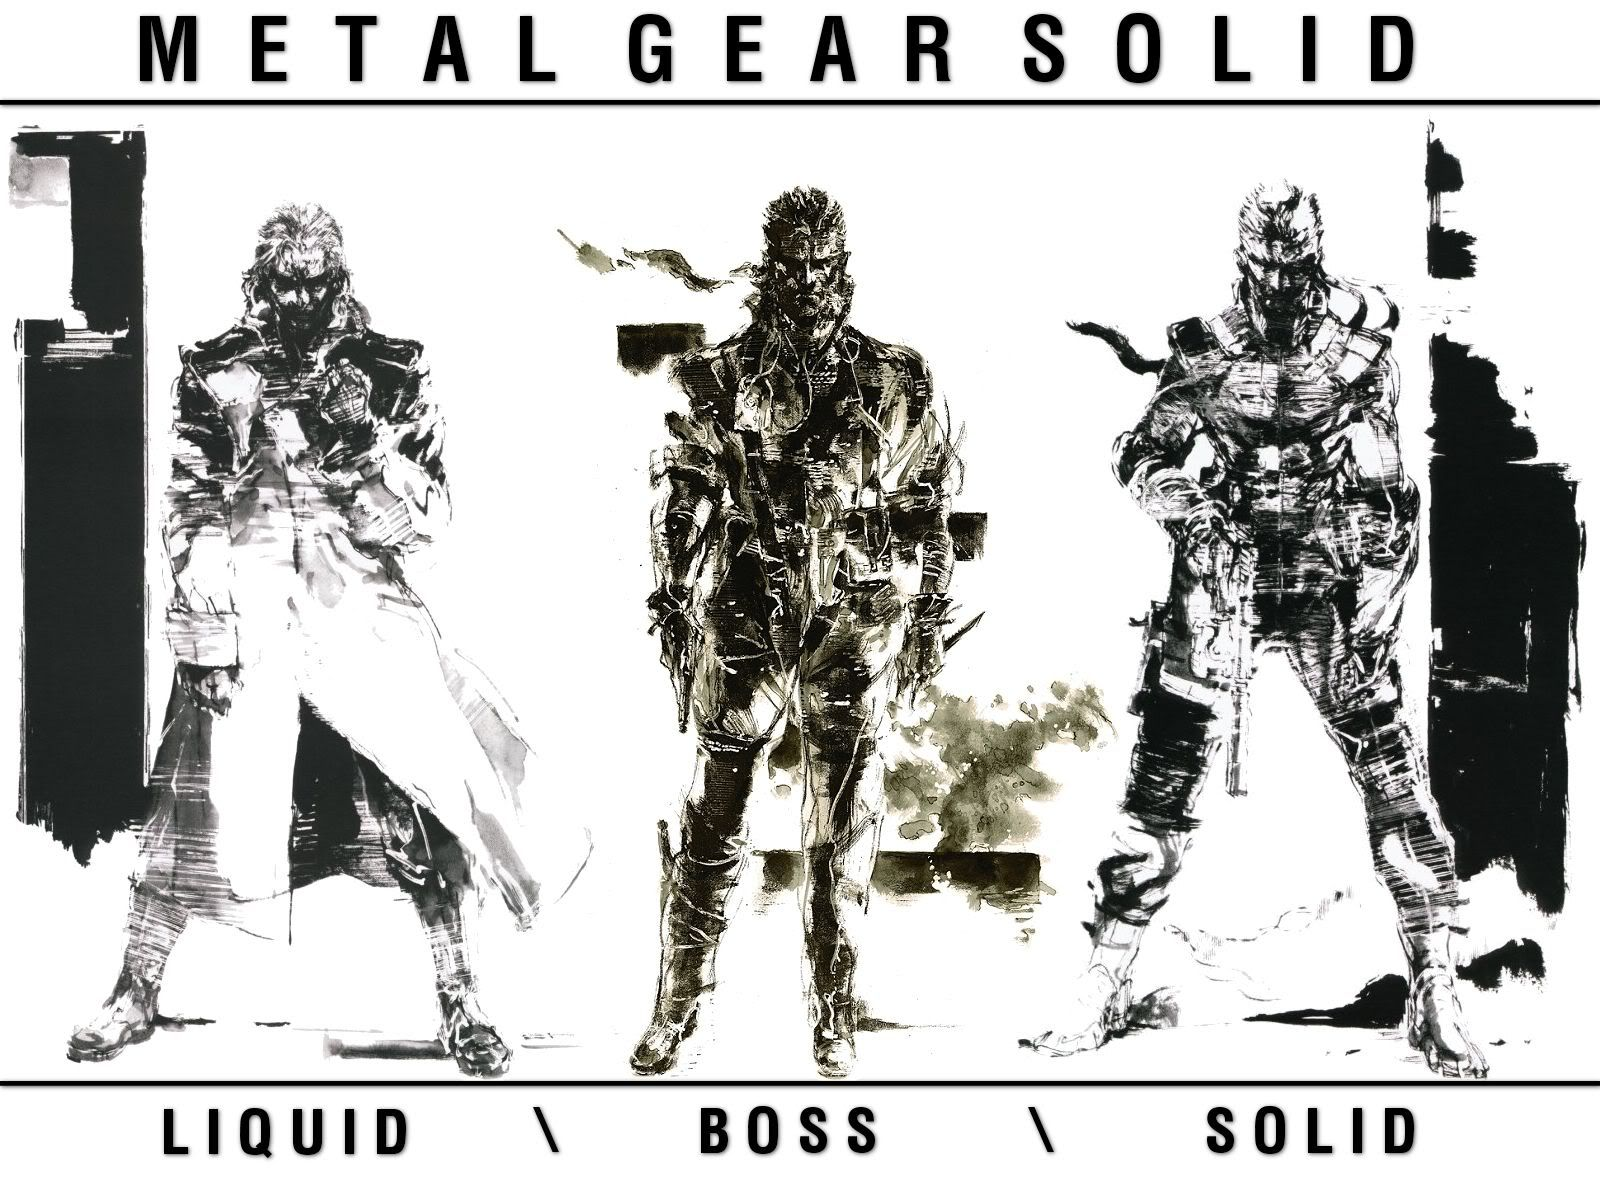 Metal Gear Solid Wallpaper 新川 日本